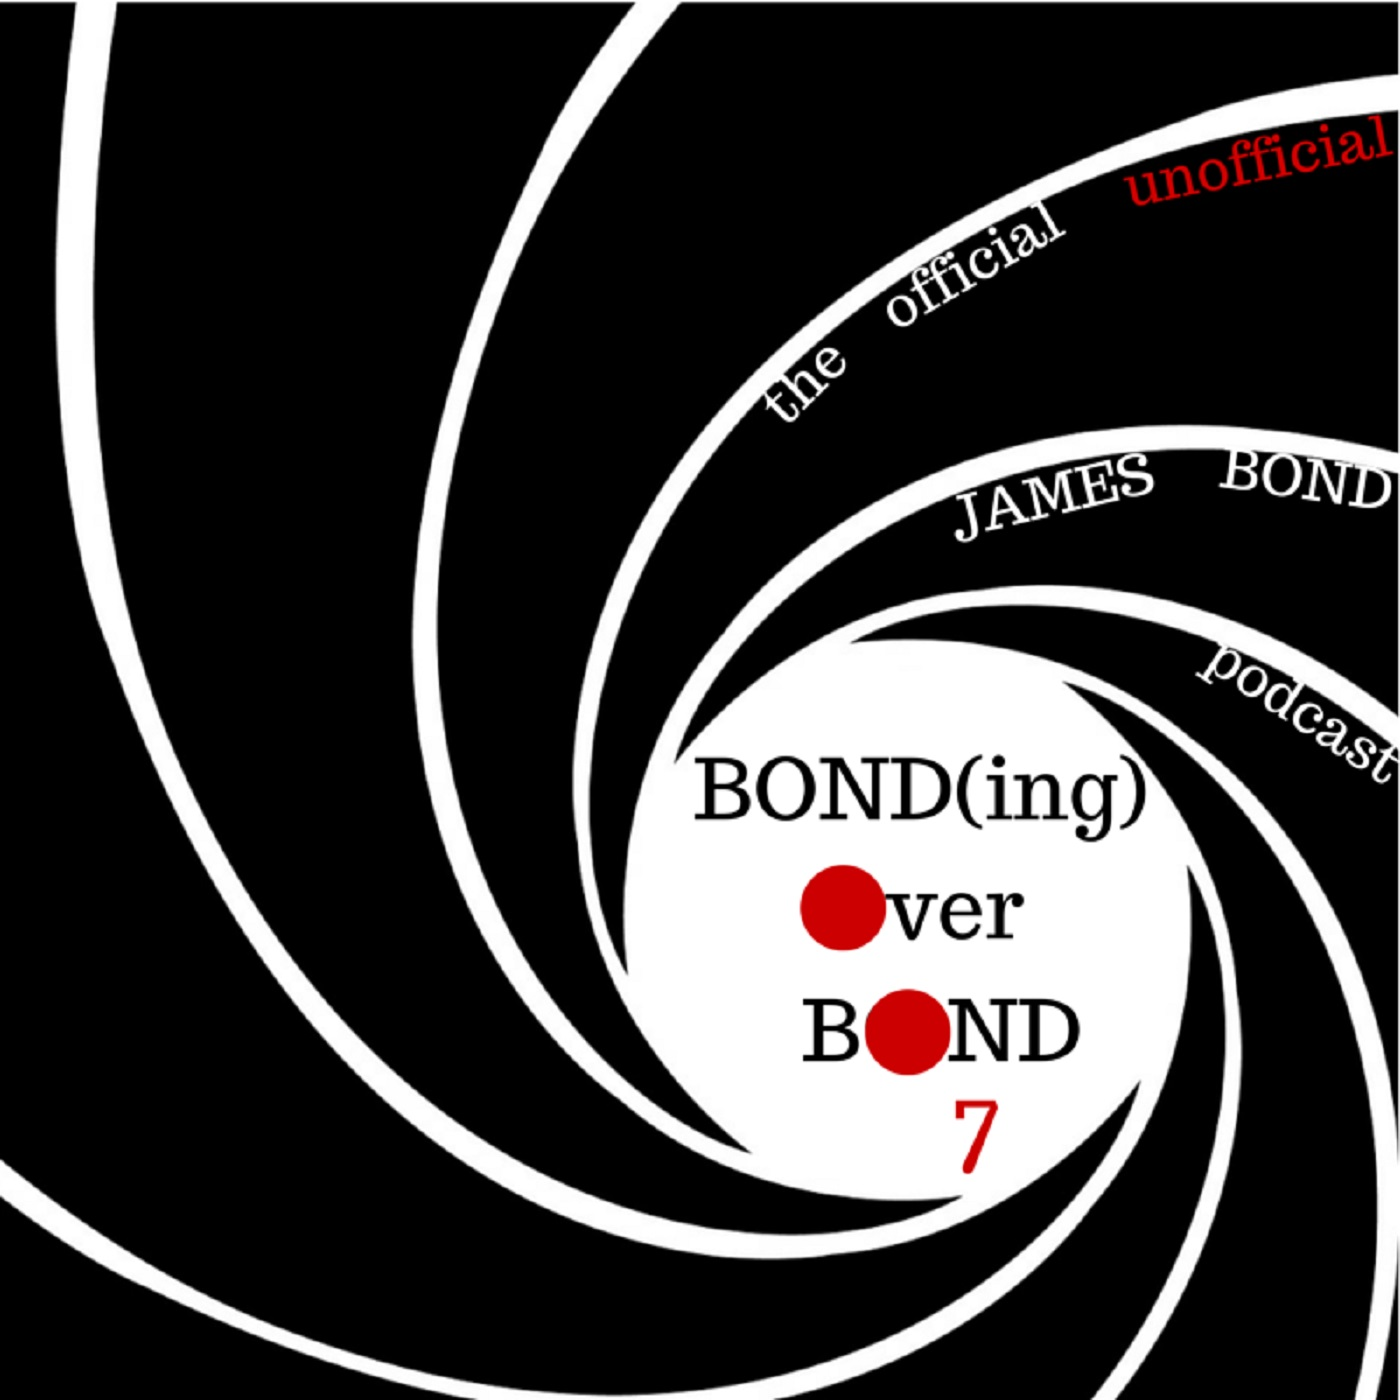 Bonding Over Bond